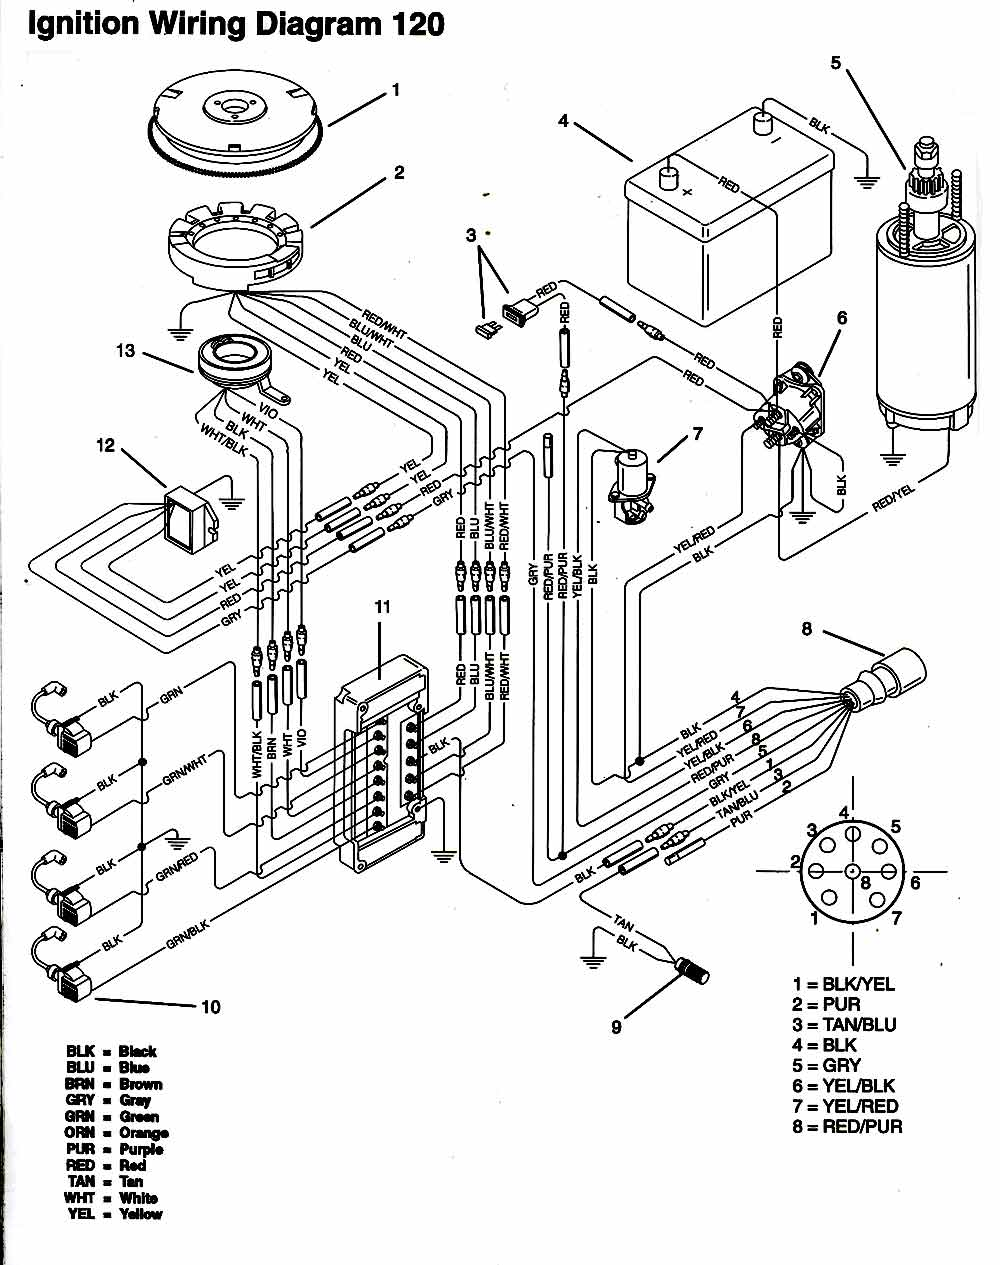 1998 Yamaha Outboard Wiring Diagram